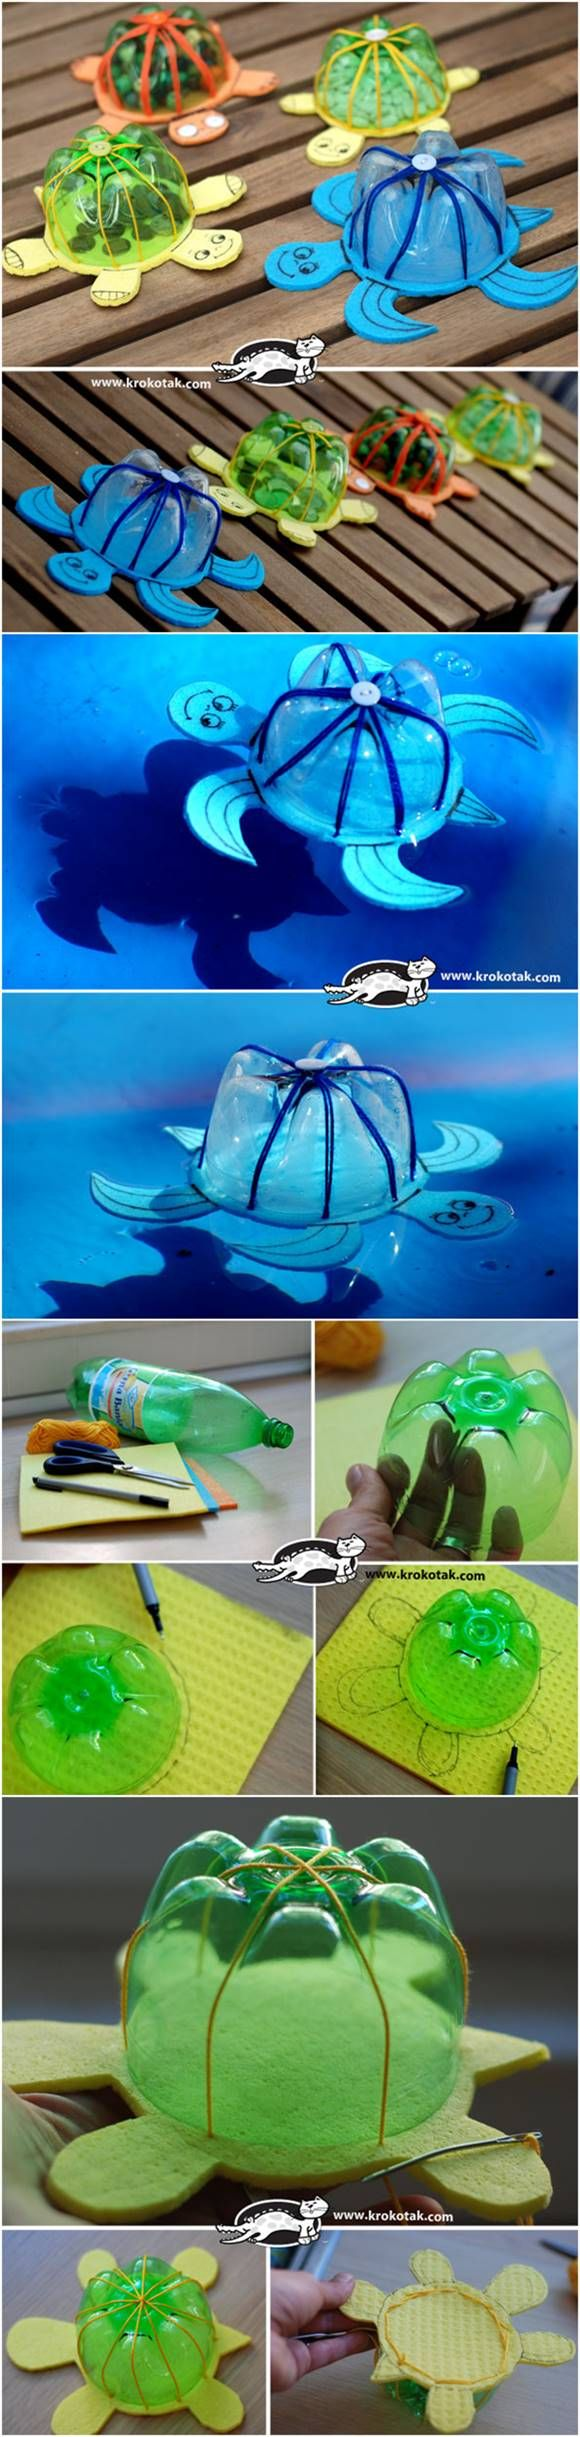 How to Make DIY Turtle Toys from Recycled Plastic Bottles #craft #kids #toy… …